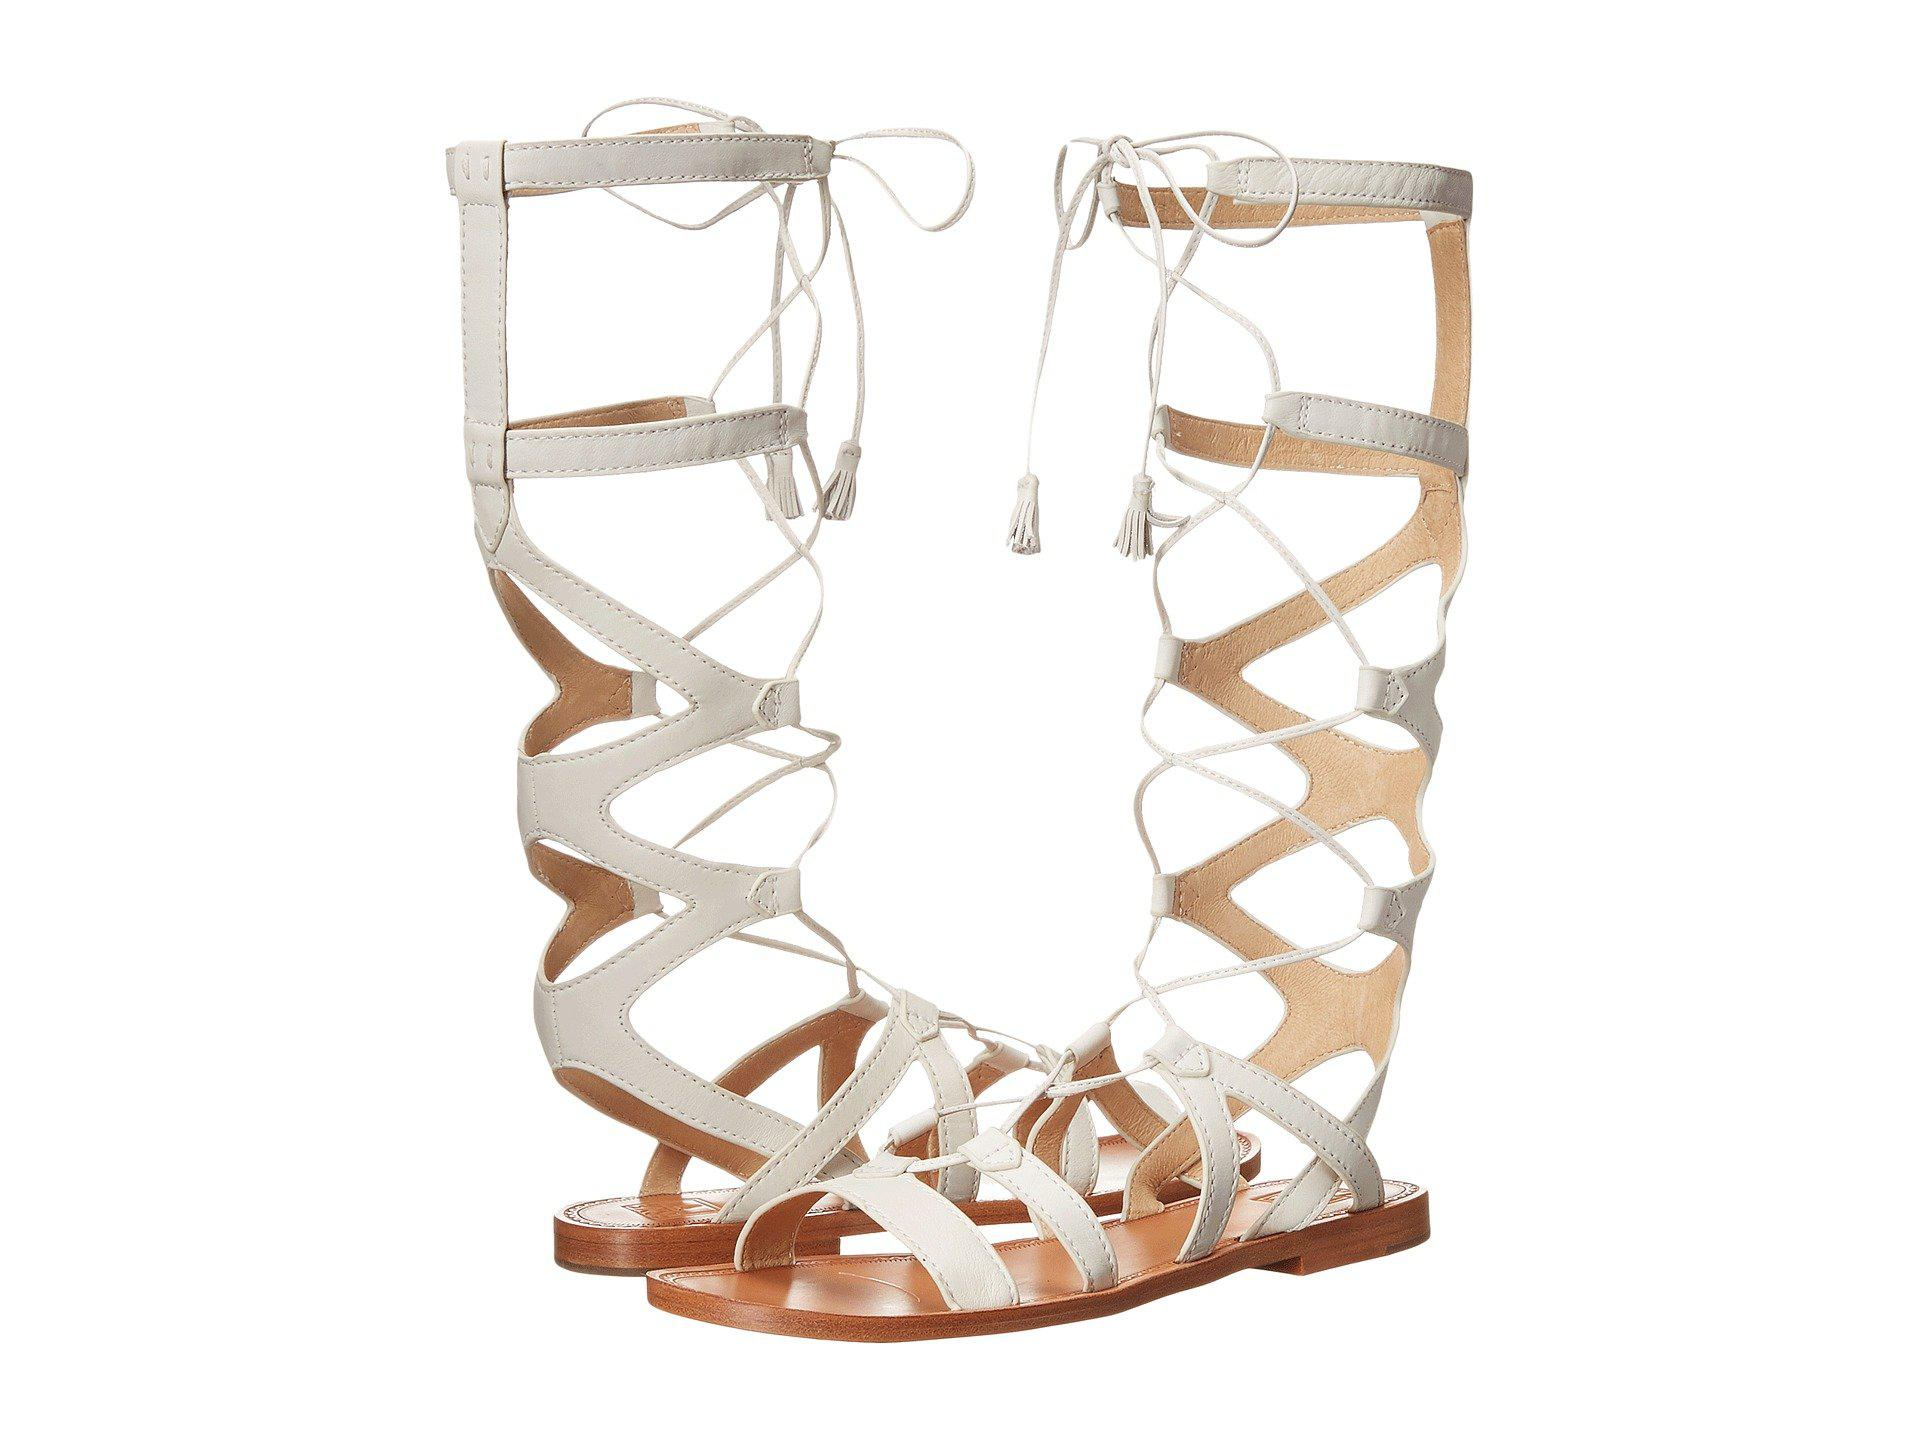 a54077a17e5 Lyst - Frye Ruth Gladiator Tall Sandal in White - Save 10%